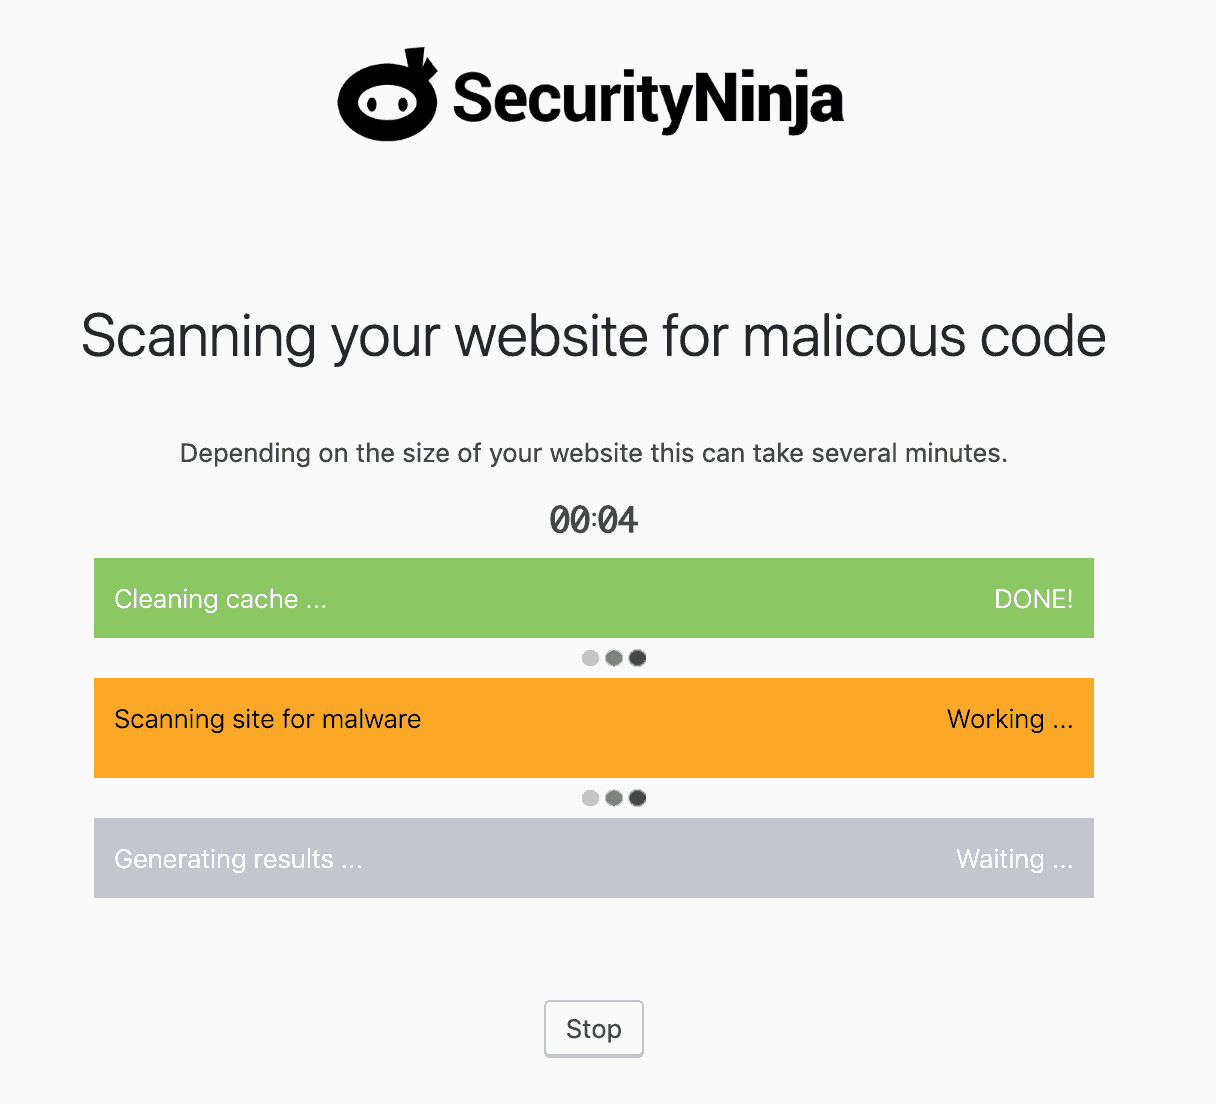 Scanning your website for malicious code